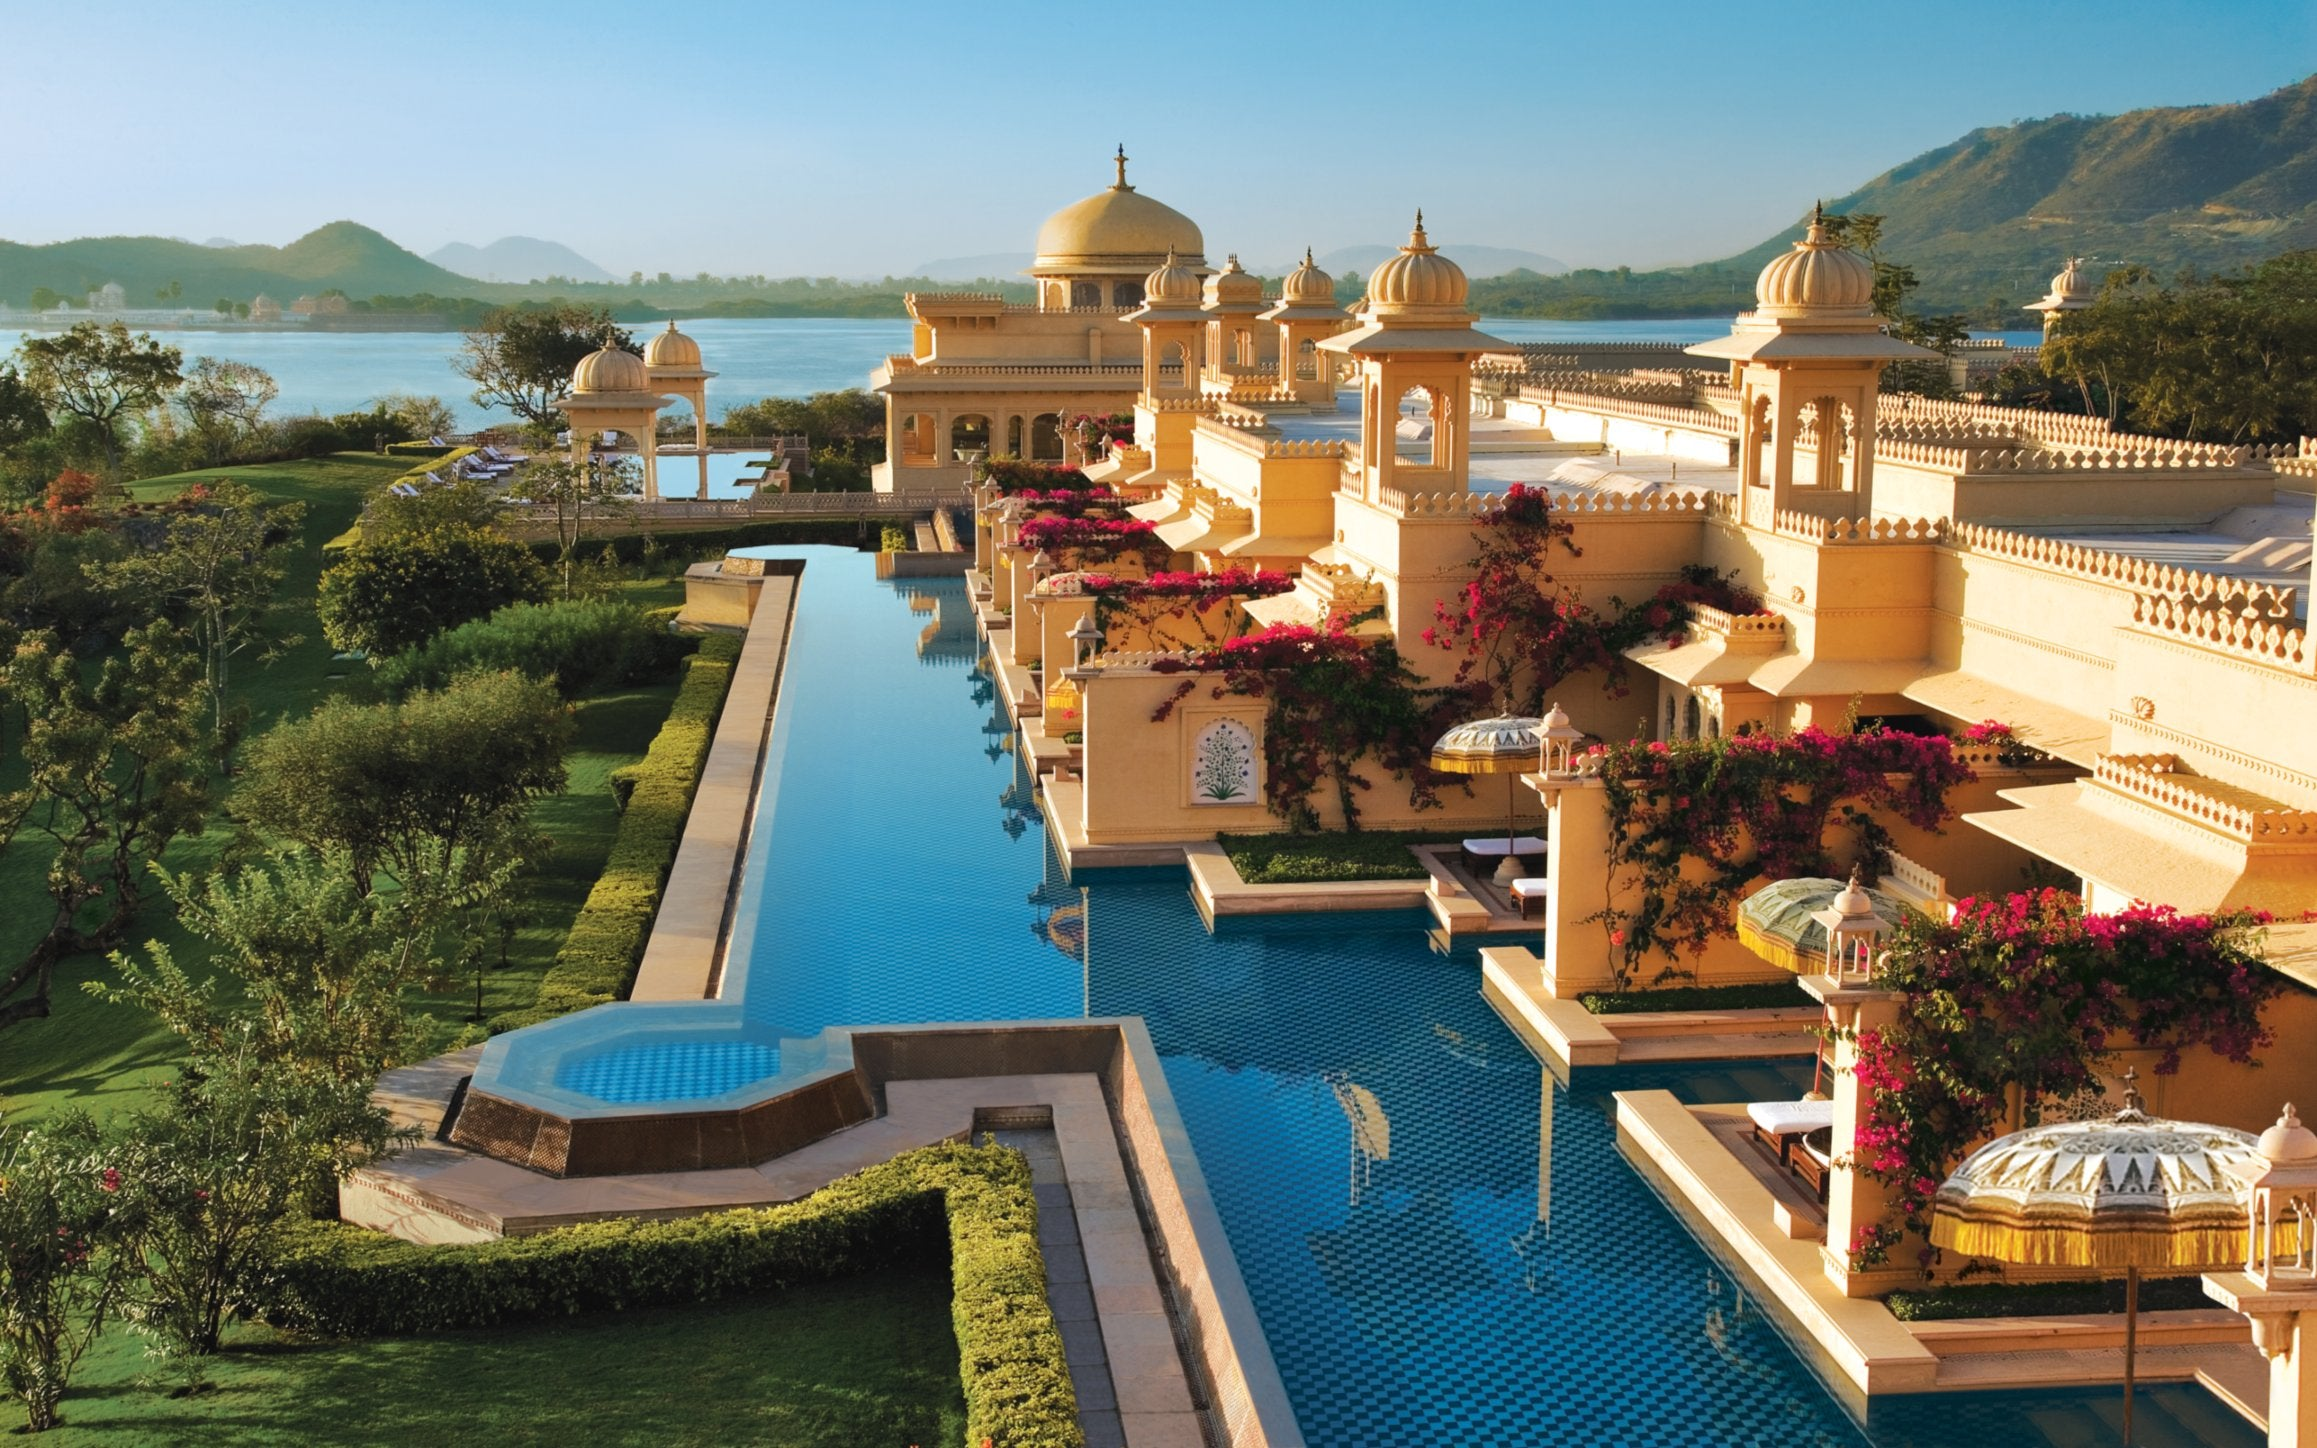 10 Best Hotel Swimming Pools Around The World - The Oberoi Udaivilas - LuxDeco.com Style Guide